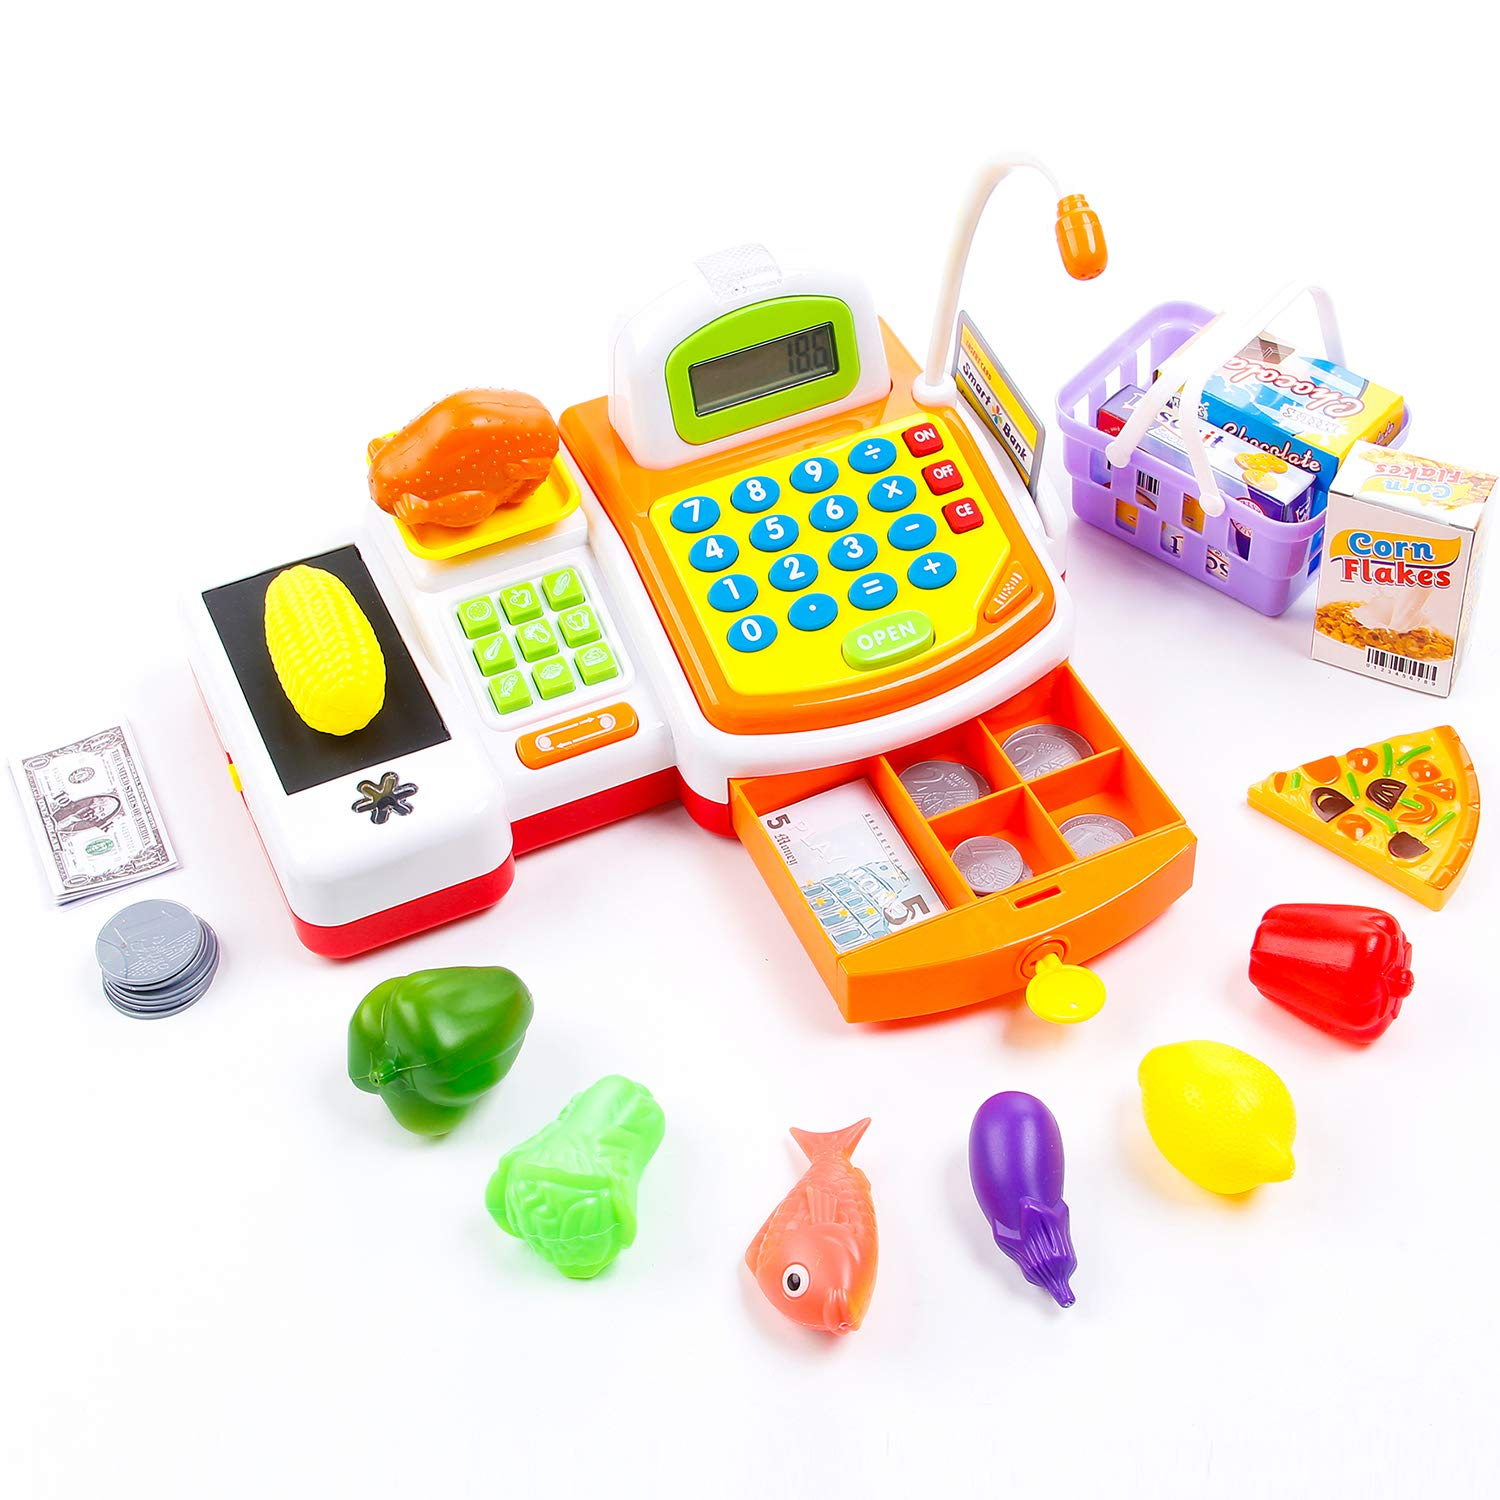 KIDAMI Pretend Play Toy Cash Register Gift for Kids with Realistic Actions (Scanner, Convey Belt, Calculator, Drawer, etc.) & Play Money & Grocery Accessories by KIDAMI